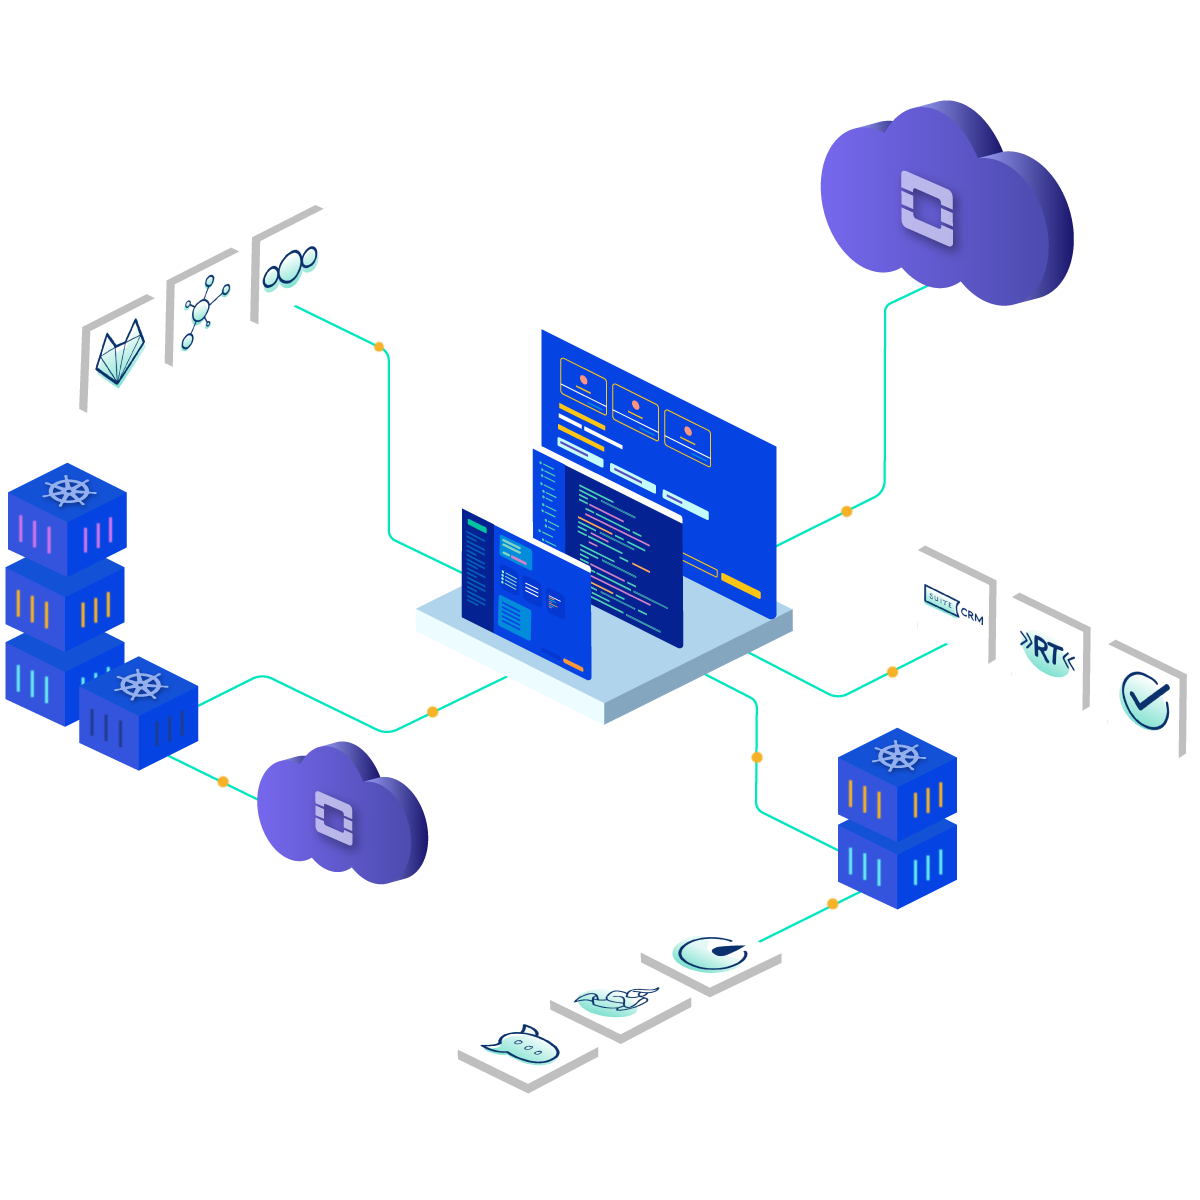 services like apps, container and cloud around a virtual machine